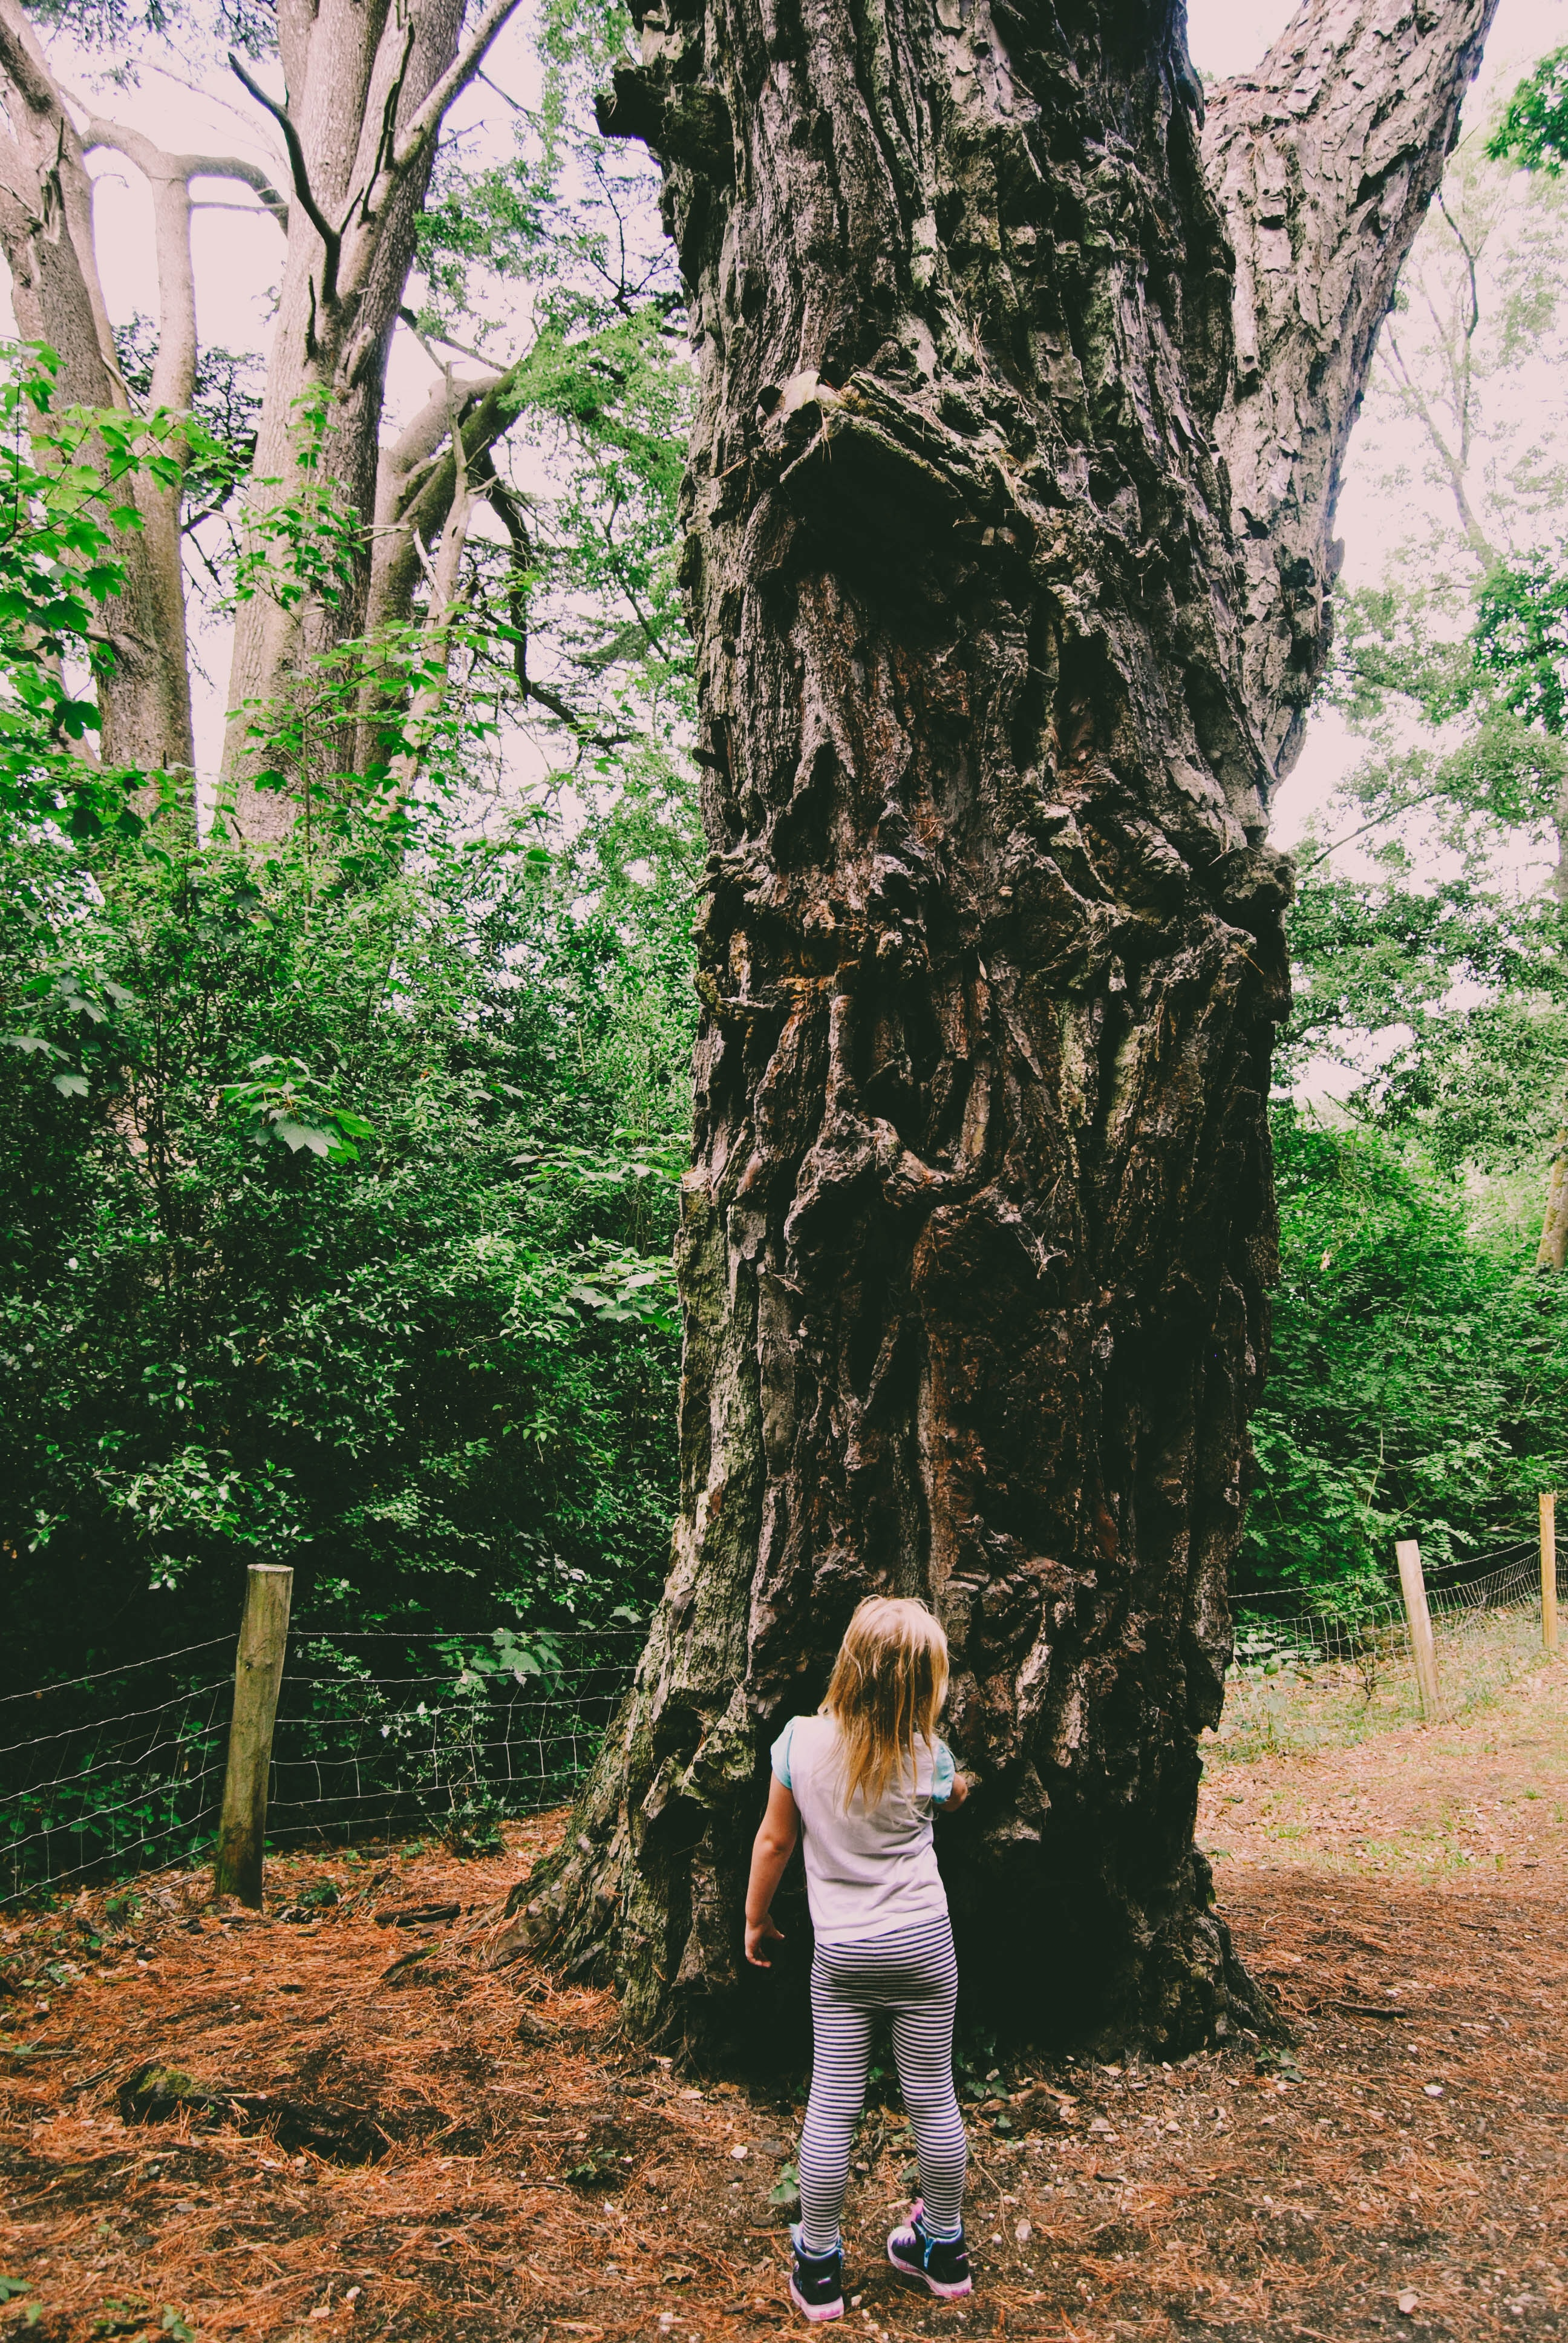 The oak tree by the road stories